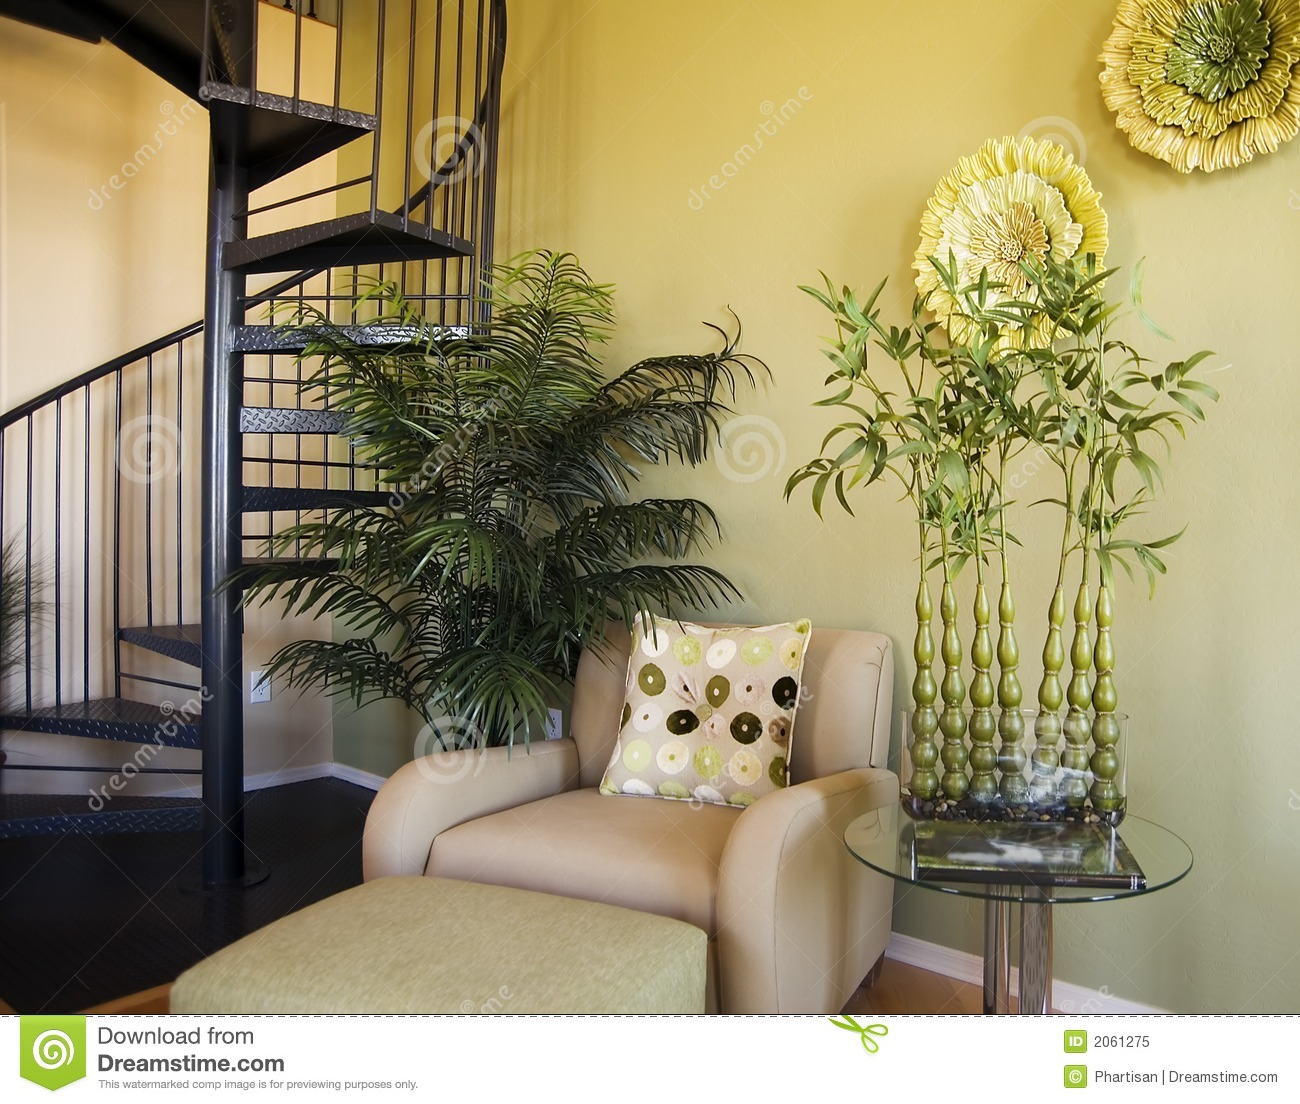 Model Home Interior Design Stock Image. Image Of Stair